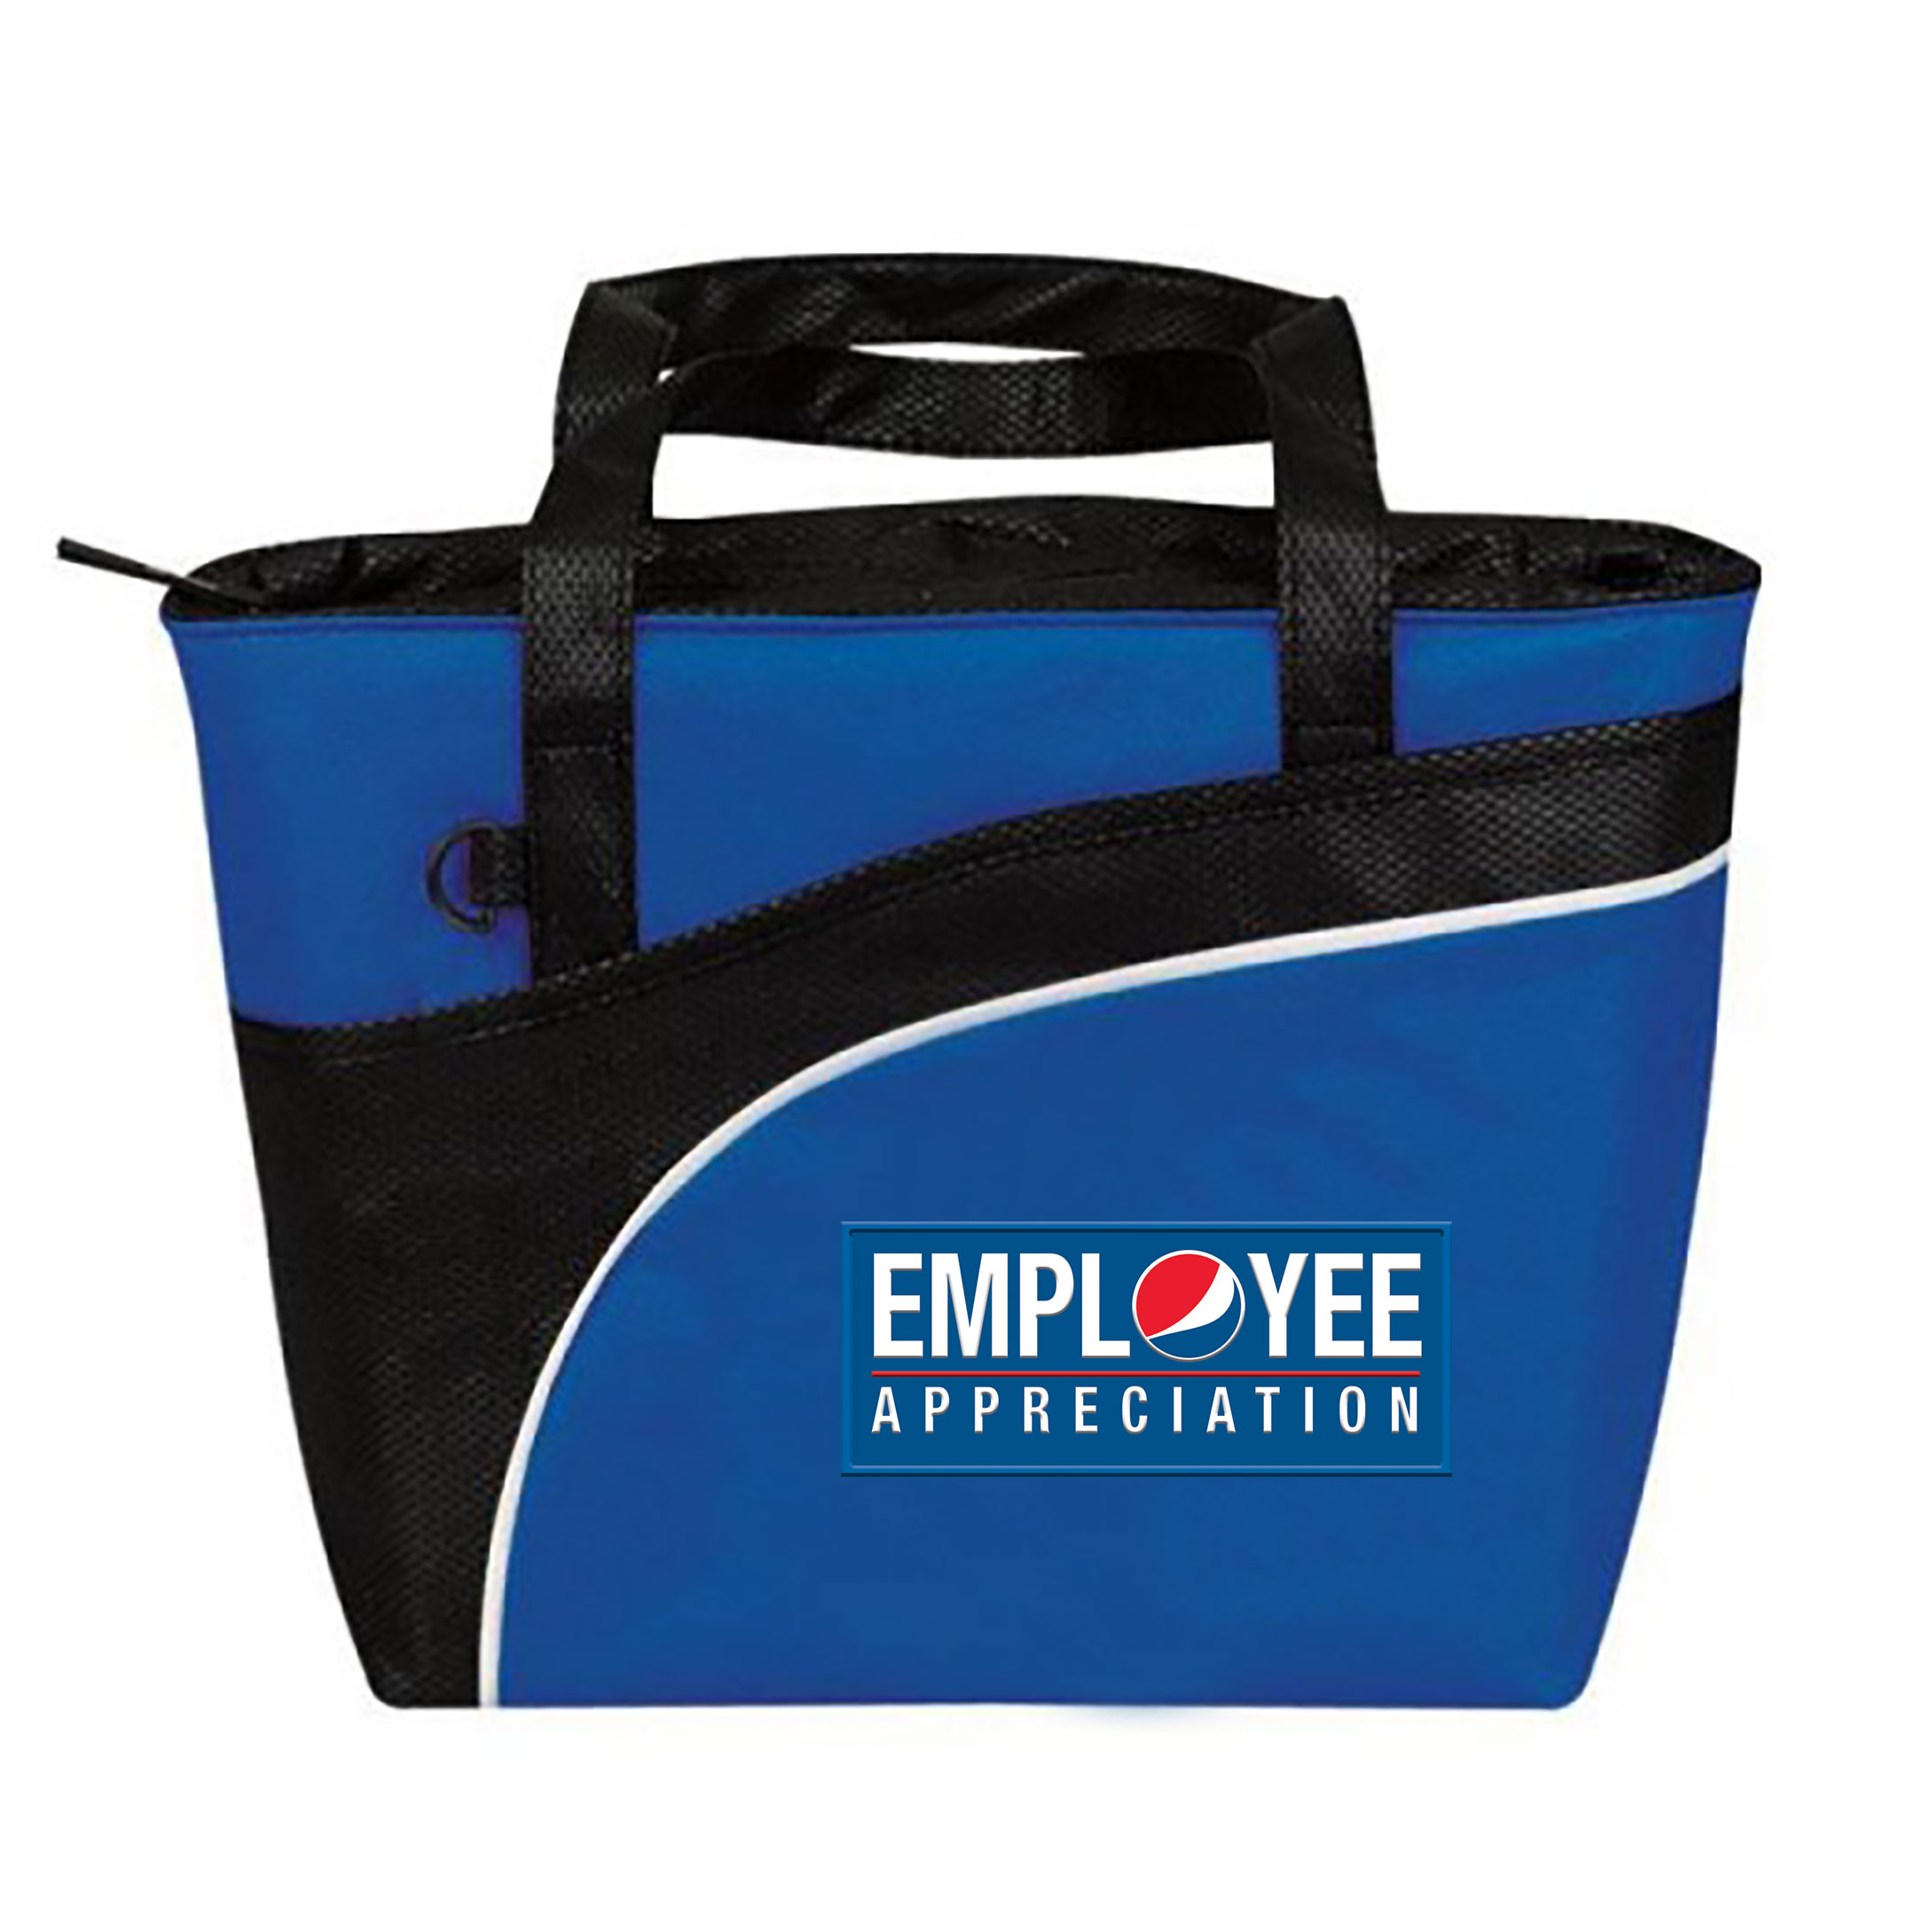 Cooler Tote Lunch Bag - Employee Appreciation